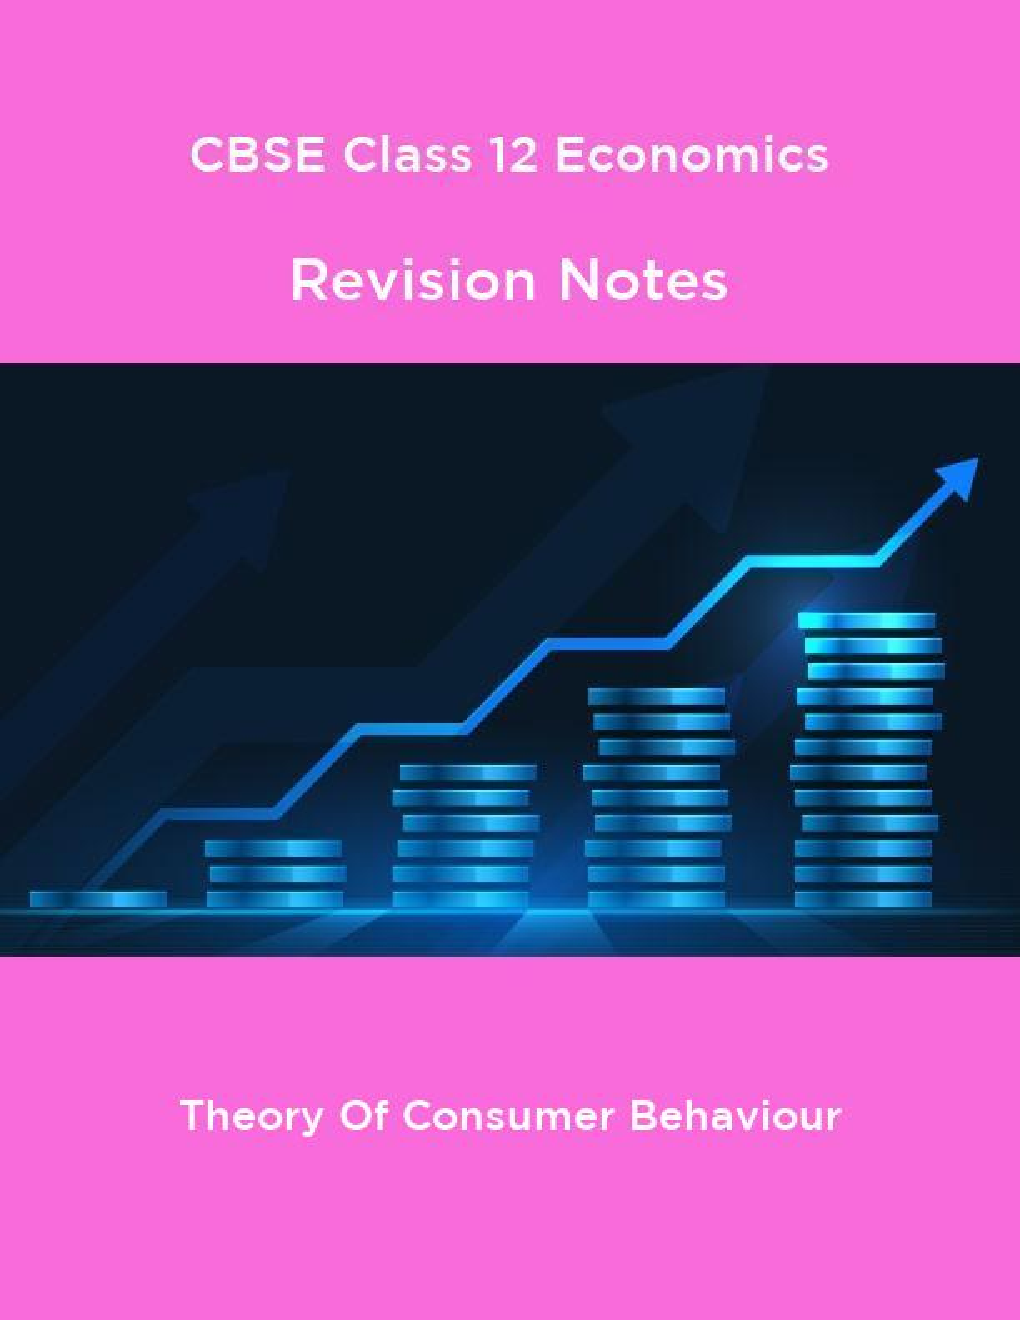 CBSE Class 12 Economics Revision Notes Theory Of Consumer Behaviour - Page 1